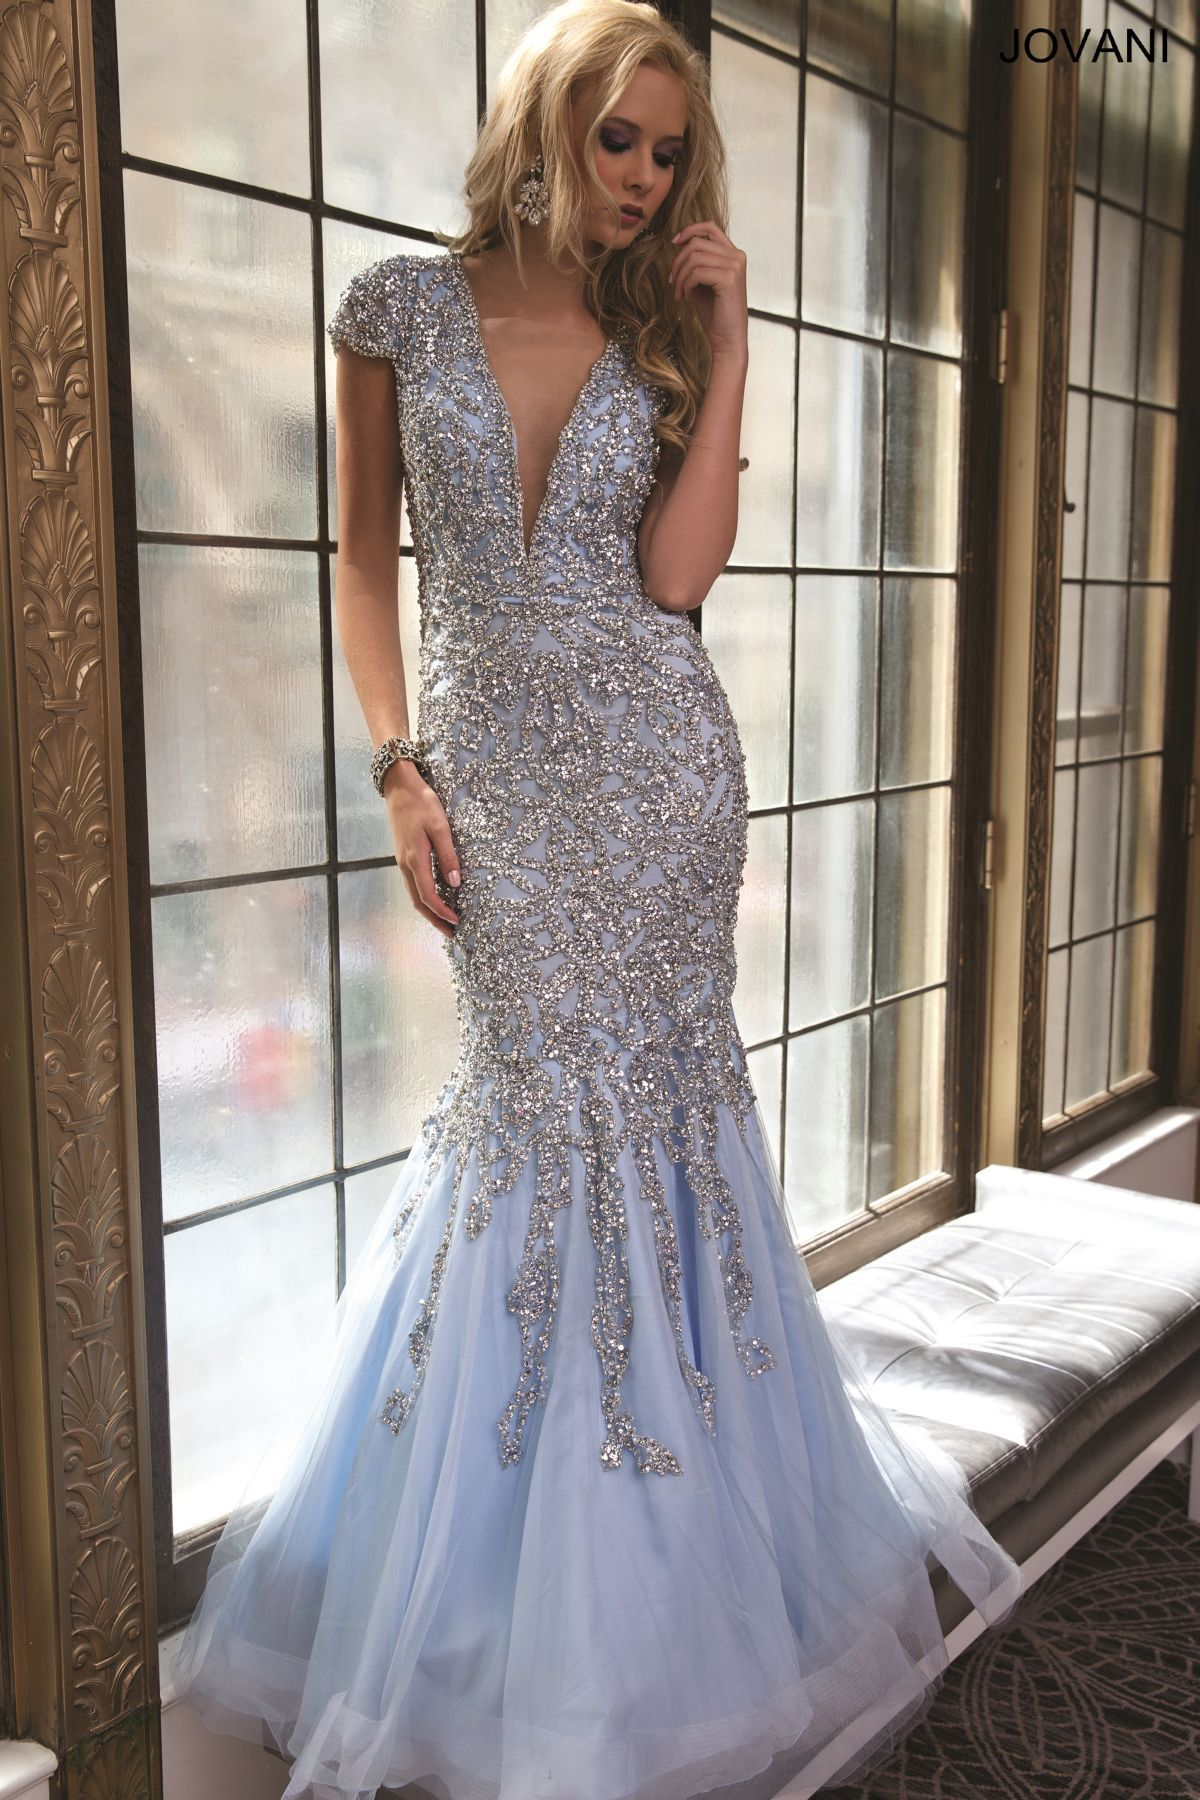 Jovani Fashions Dresses | Pinterest